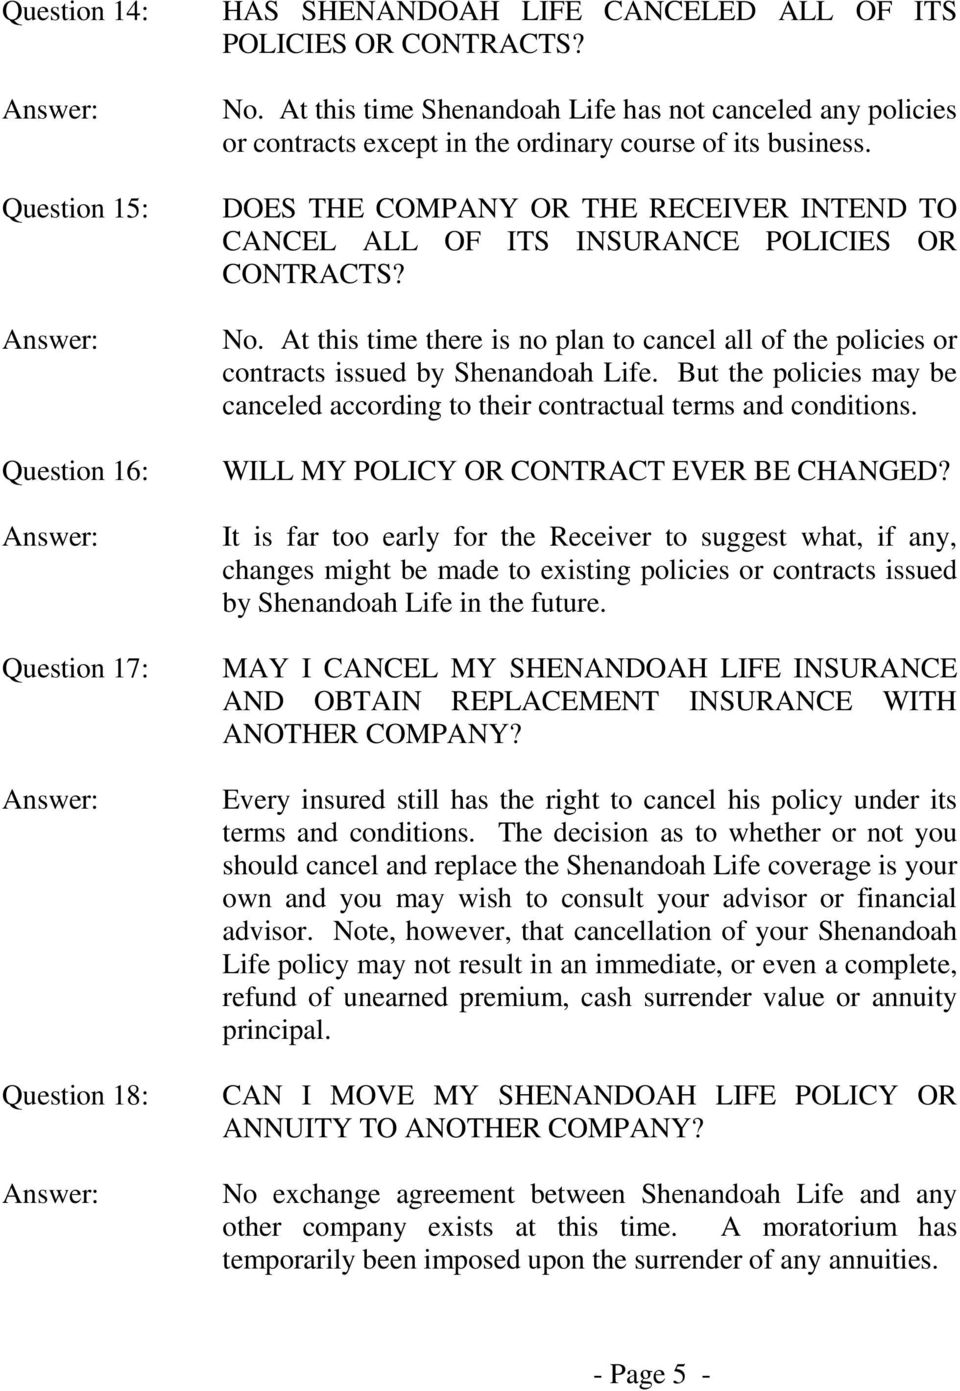 DOES THE COMPANY OR THE RECEIVER INTEND TO CANCEL ALL OF ITS INSURANCE POLICIES OR CONTRACTS? No. At this time there is no plan to cancel all of the policies or contracts issued by Shenandoah Life.